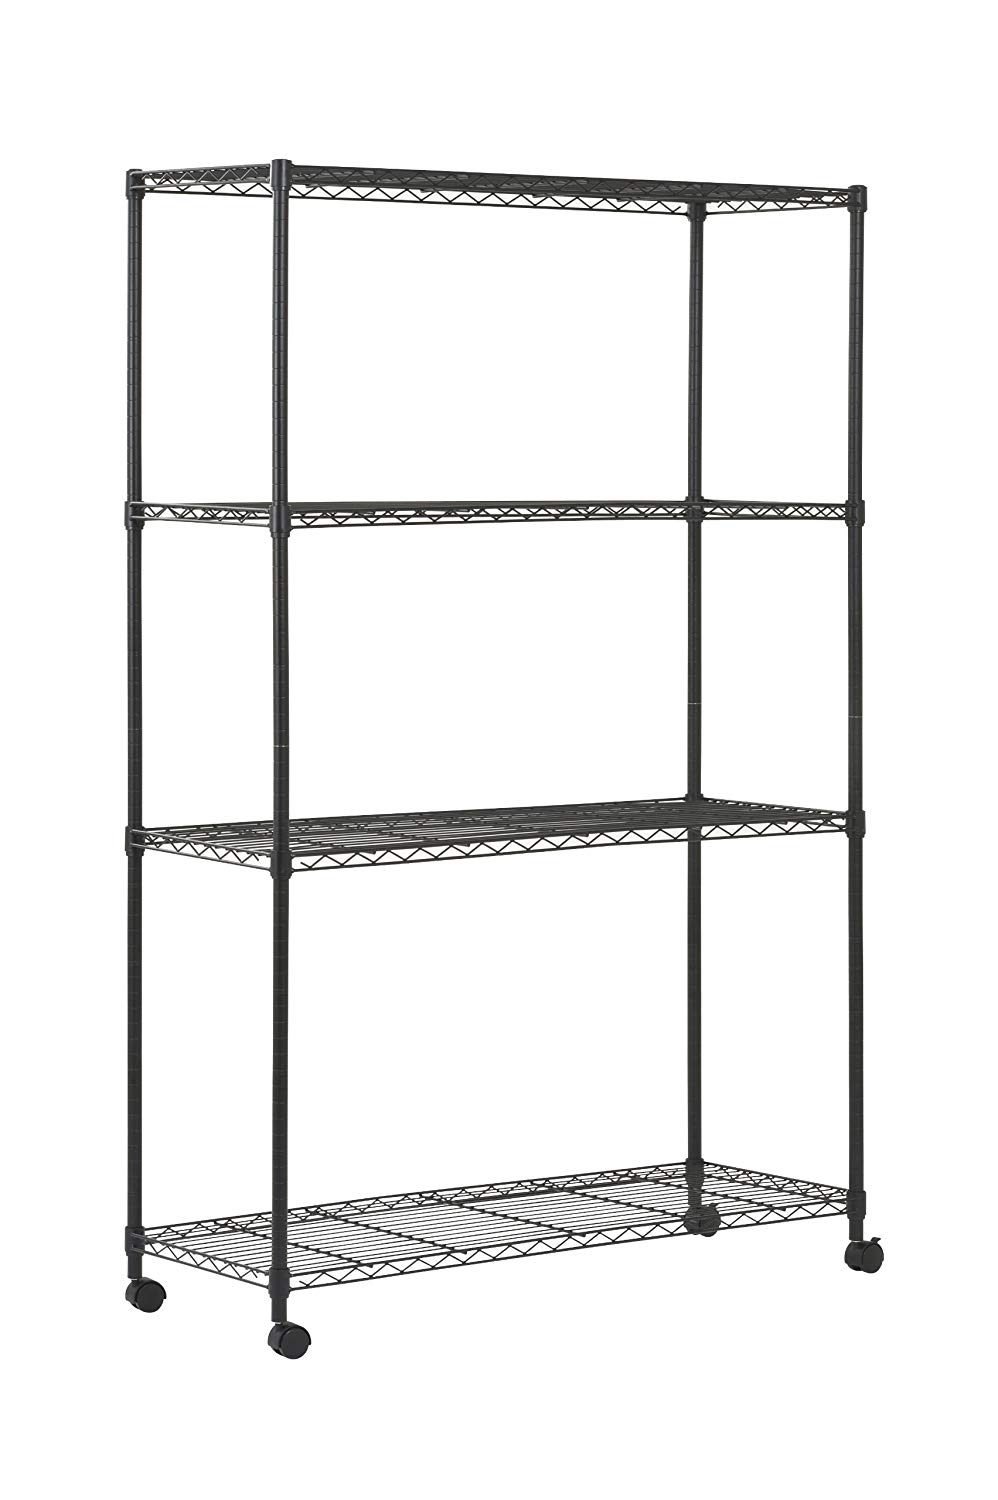 18 Inch x 48 Inch Chrome Wire Storage Cart